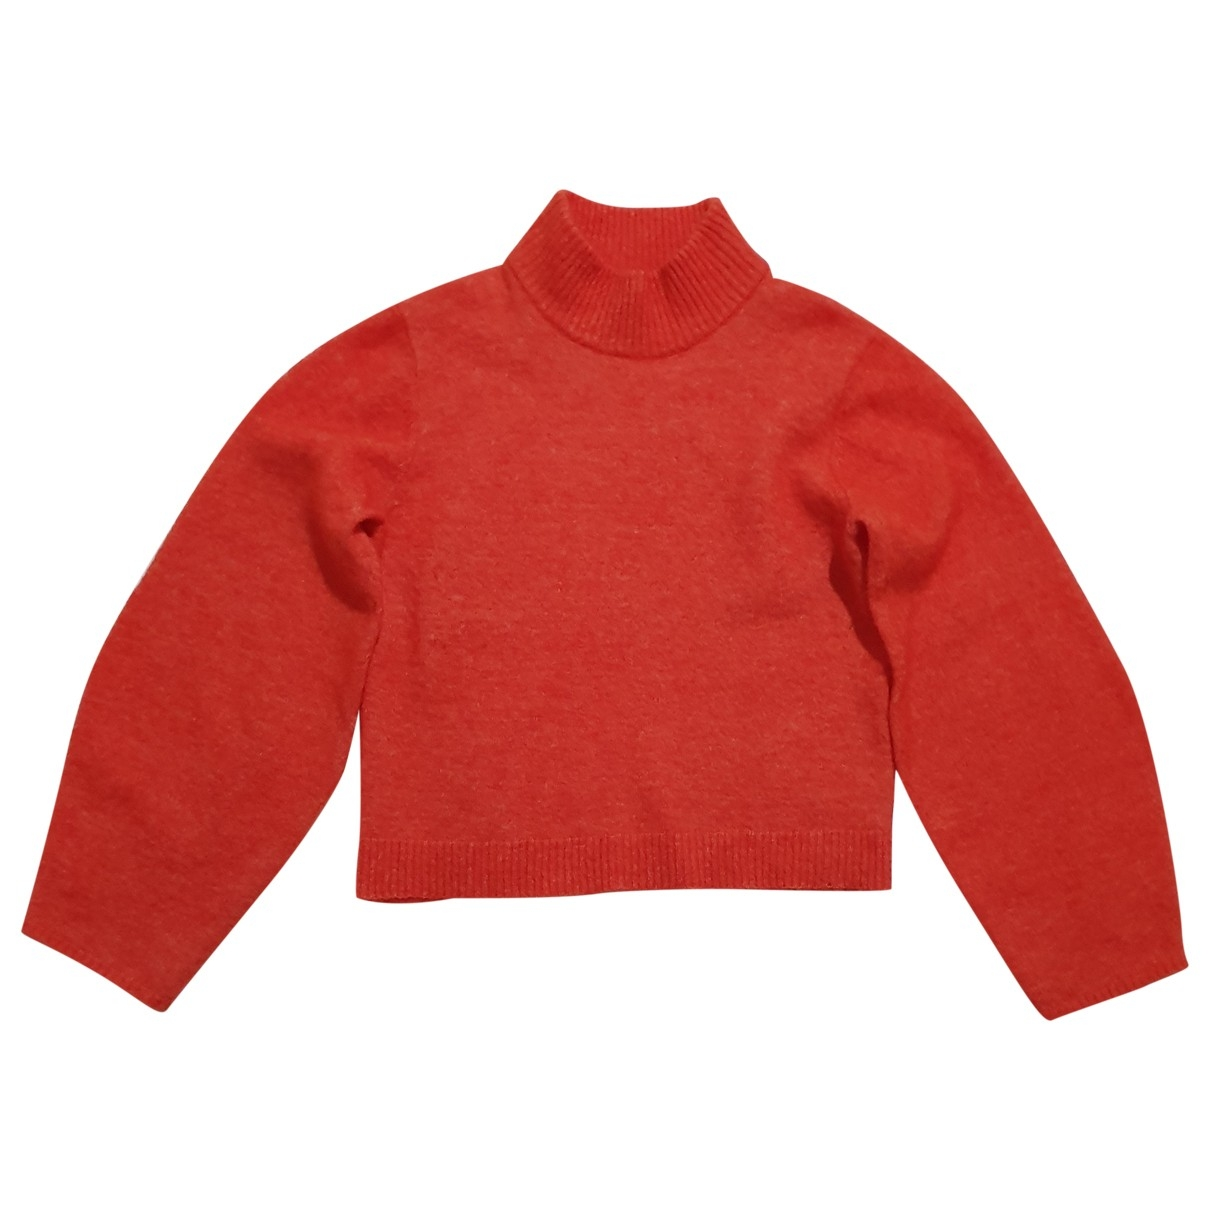 H&m Studio \N Orange Wool Knitwear for Women M International